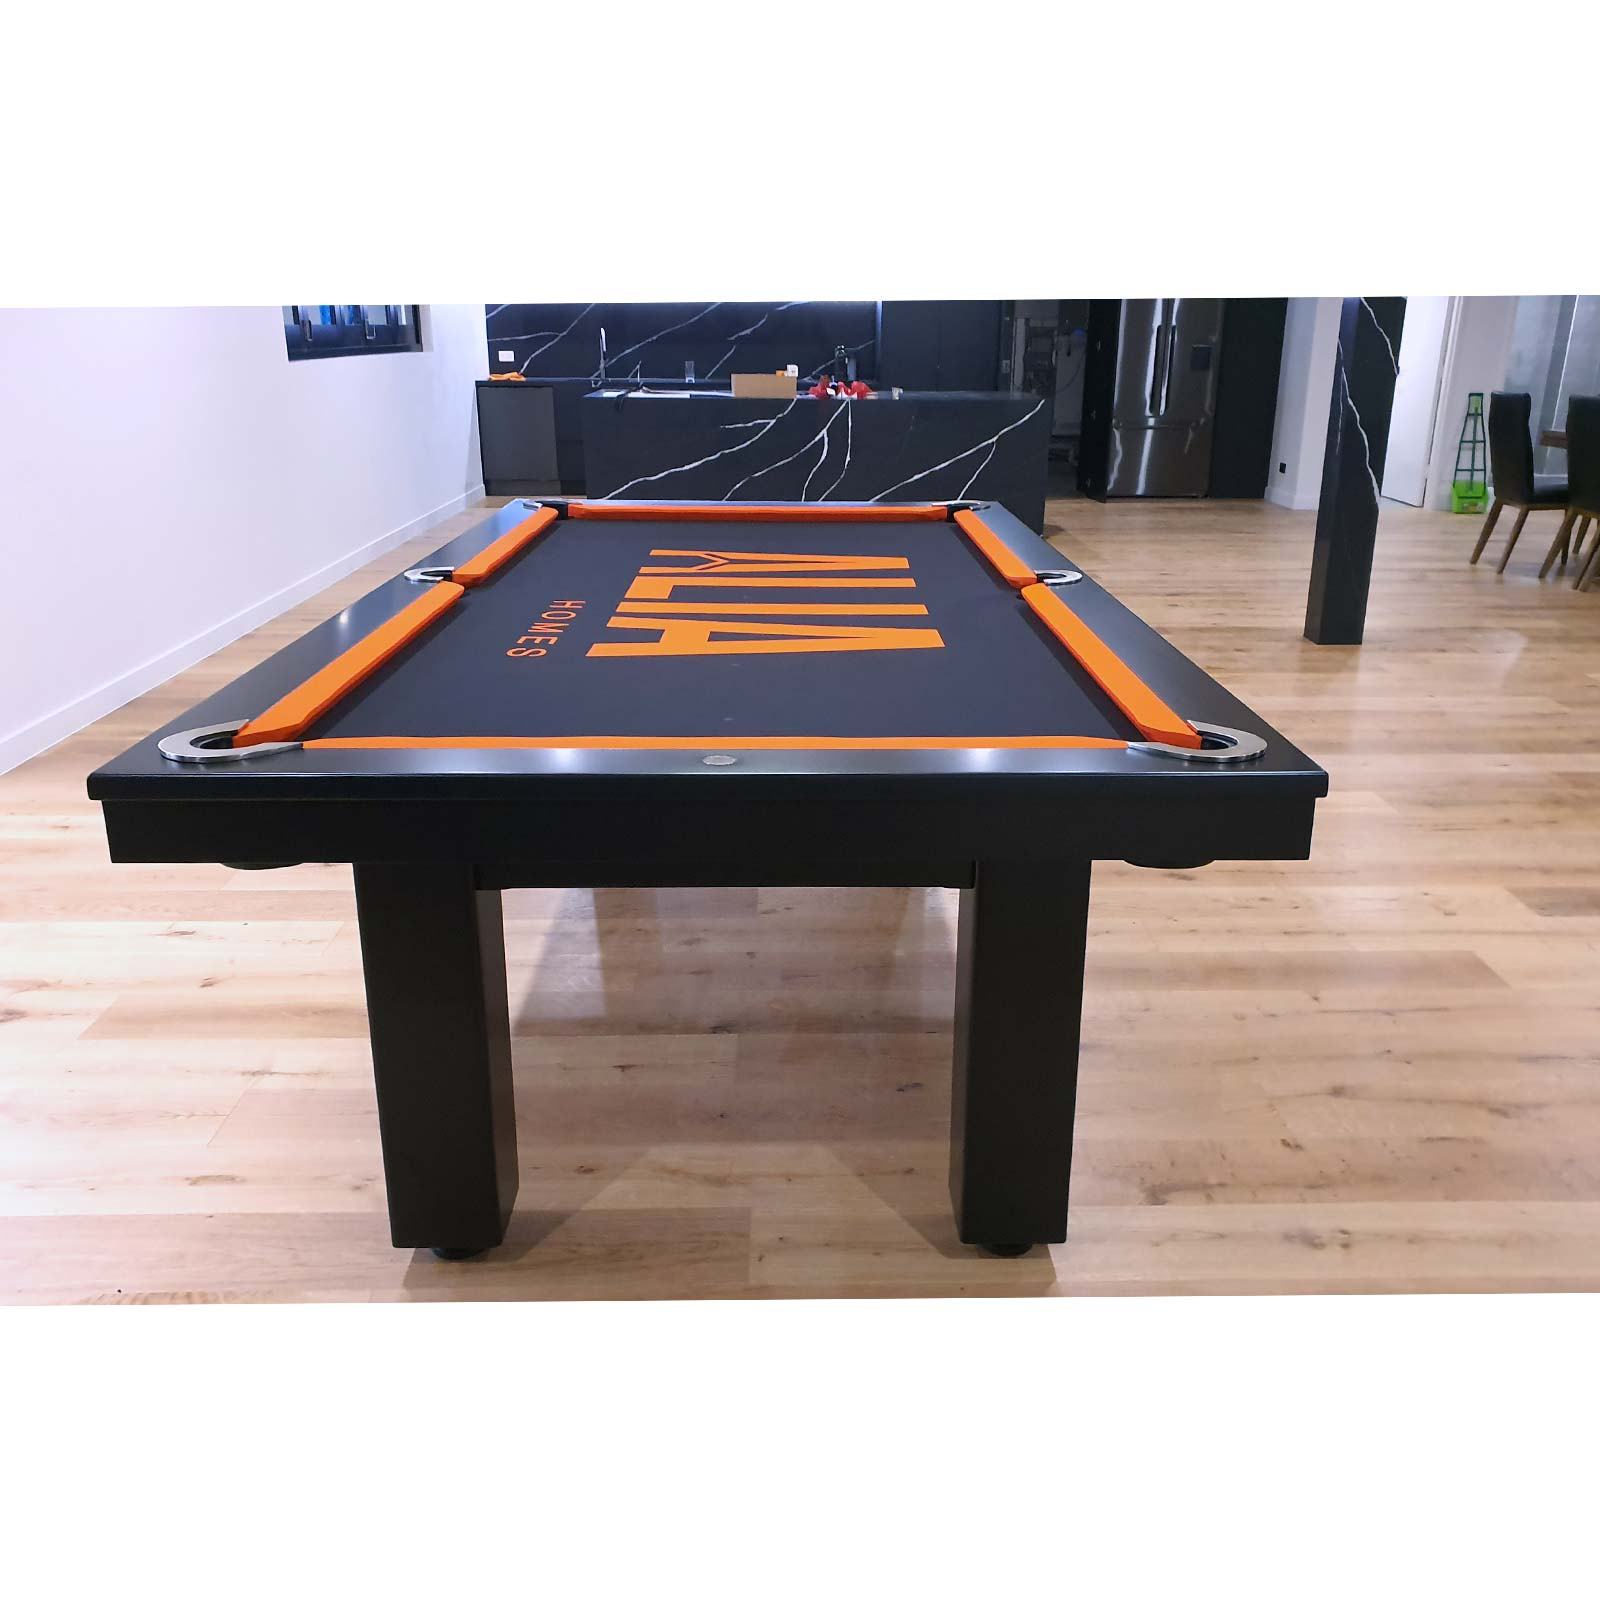 Customized Branded - Make the table with your own logo!